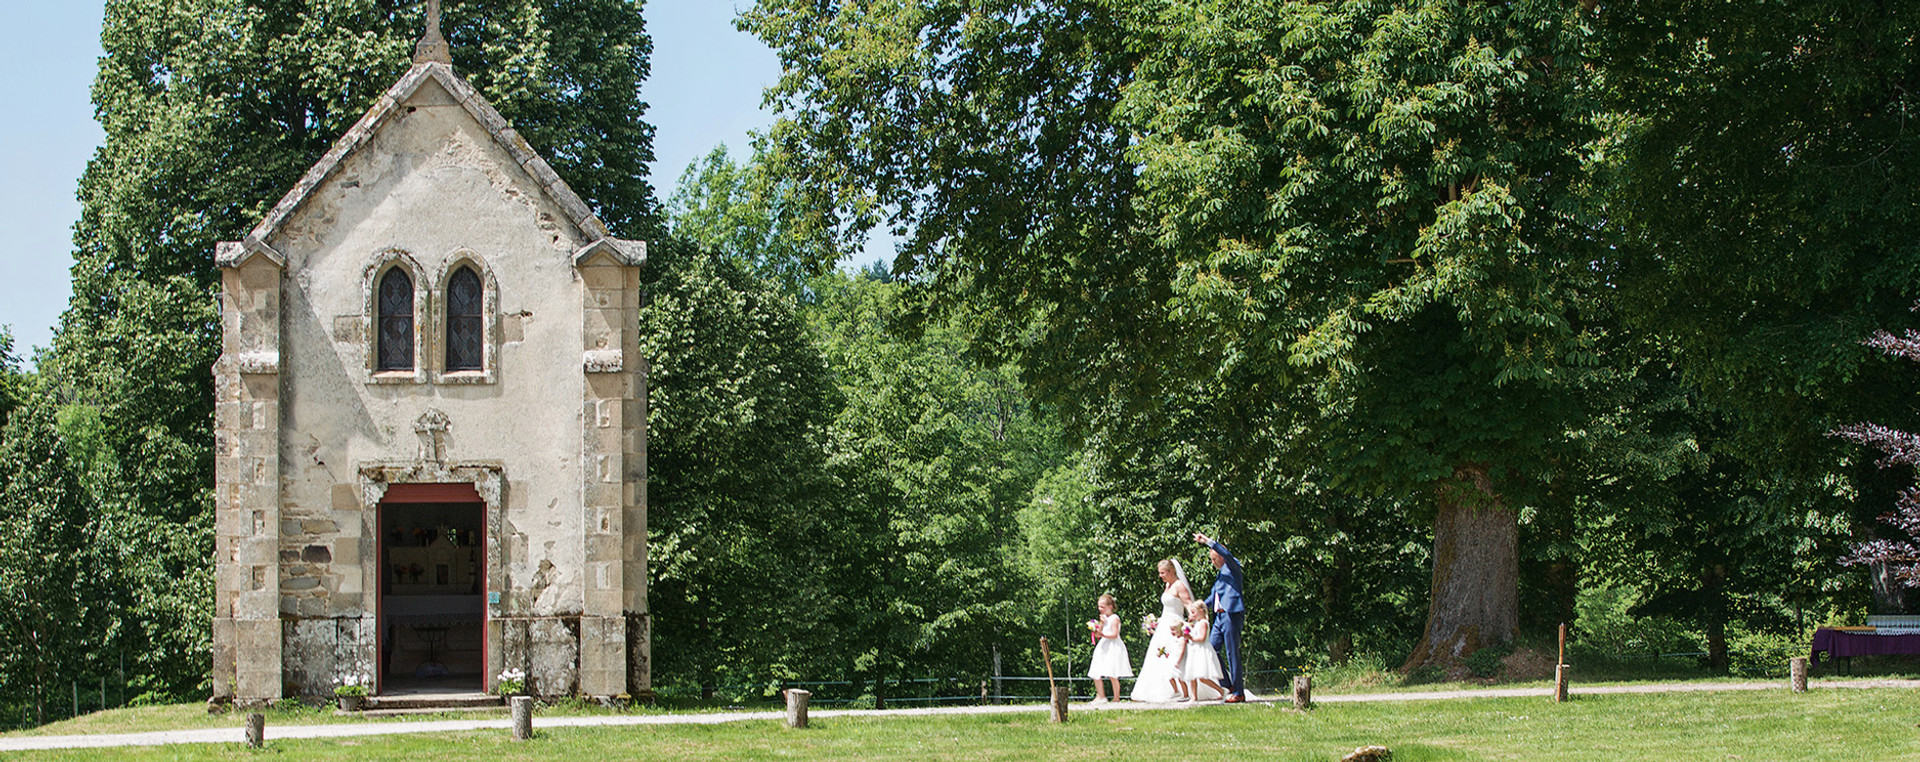 GETTING MARRIED AT l'ABBAYE DU PALAIS